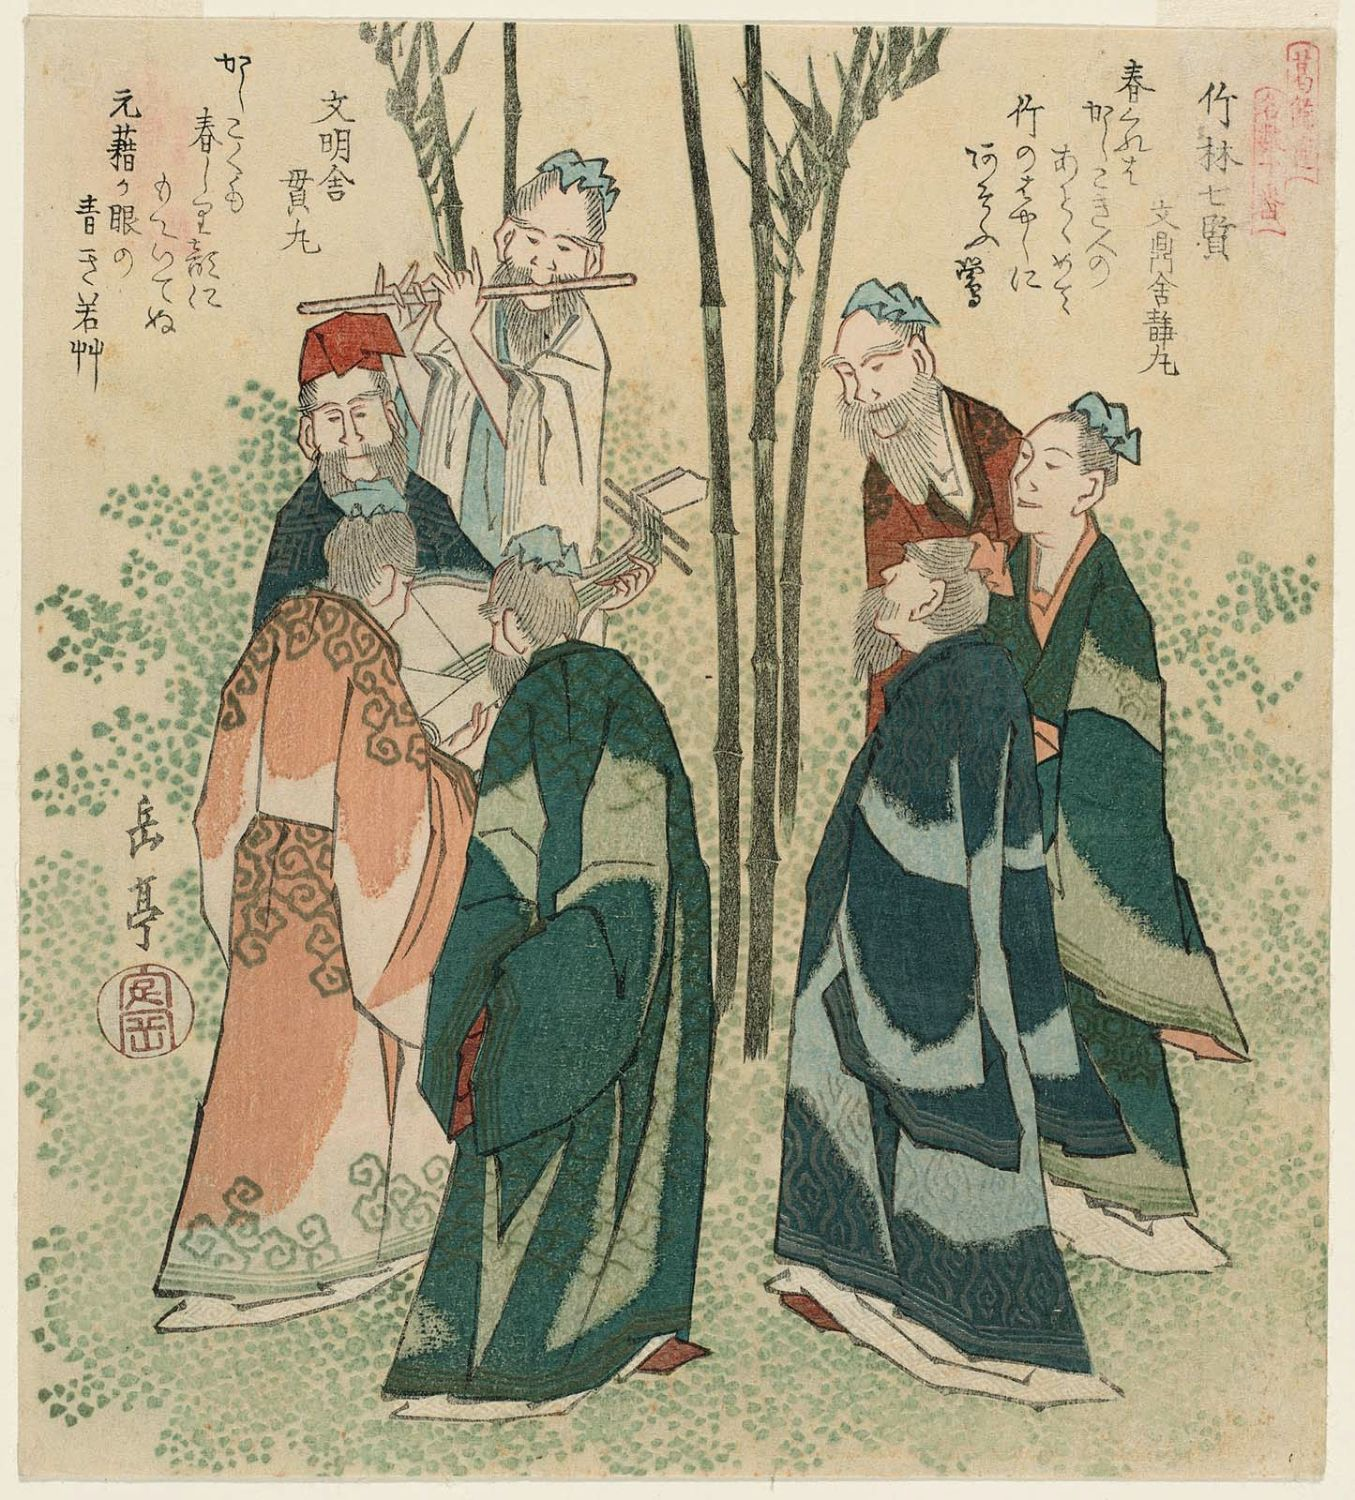 CHP-219-The History of Tang Poetry Part 2